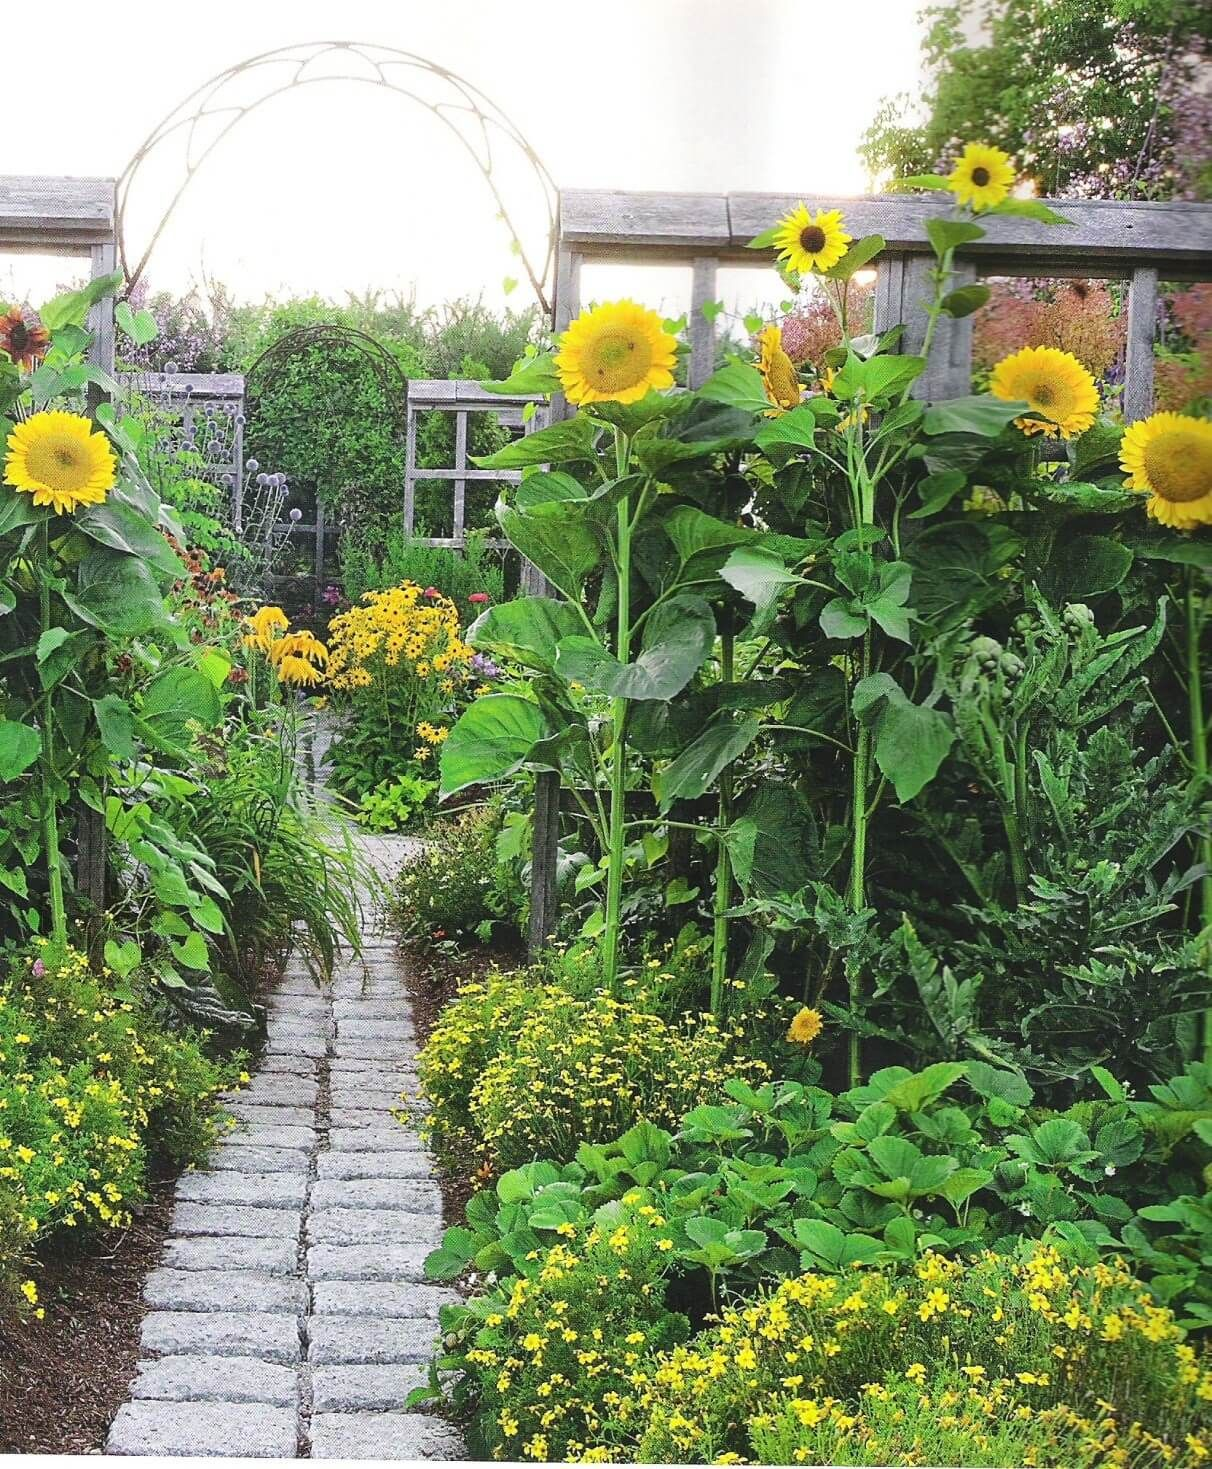 Super Best Backyard Garden Ideas  Landscaping and More is part of Sunflower garden, Flower garden design, Beautiful flowers garden, Marigolds in garden, Flower garden, Edible landscaping - Backyard Garden Ideas  If gardening is one of your hobbies, you can transform the backyard into a green getaway  This space will calm the restless mind af